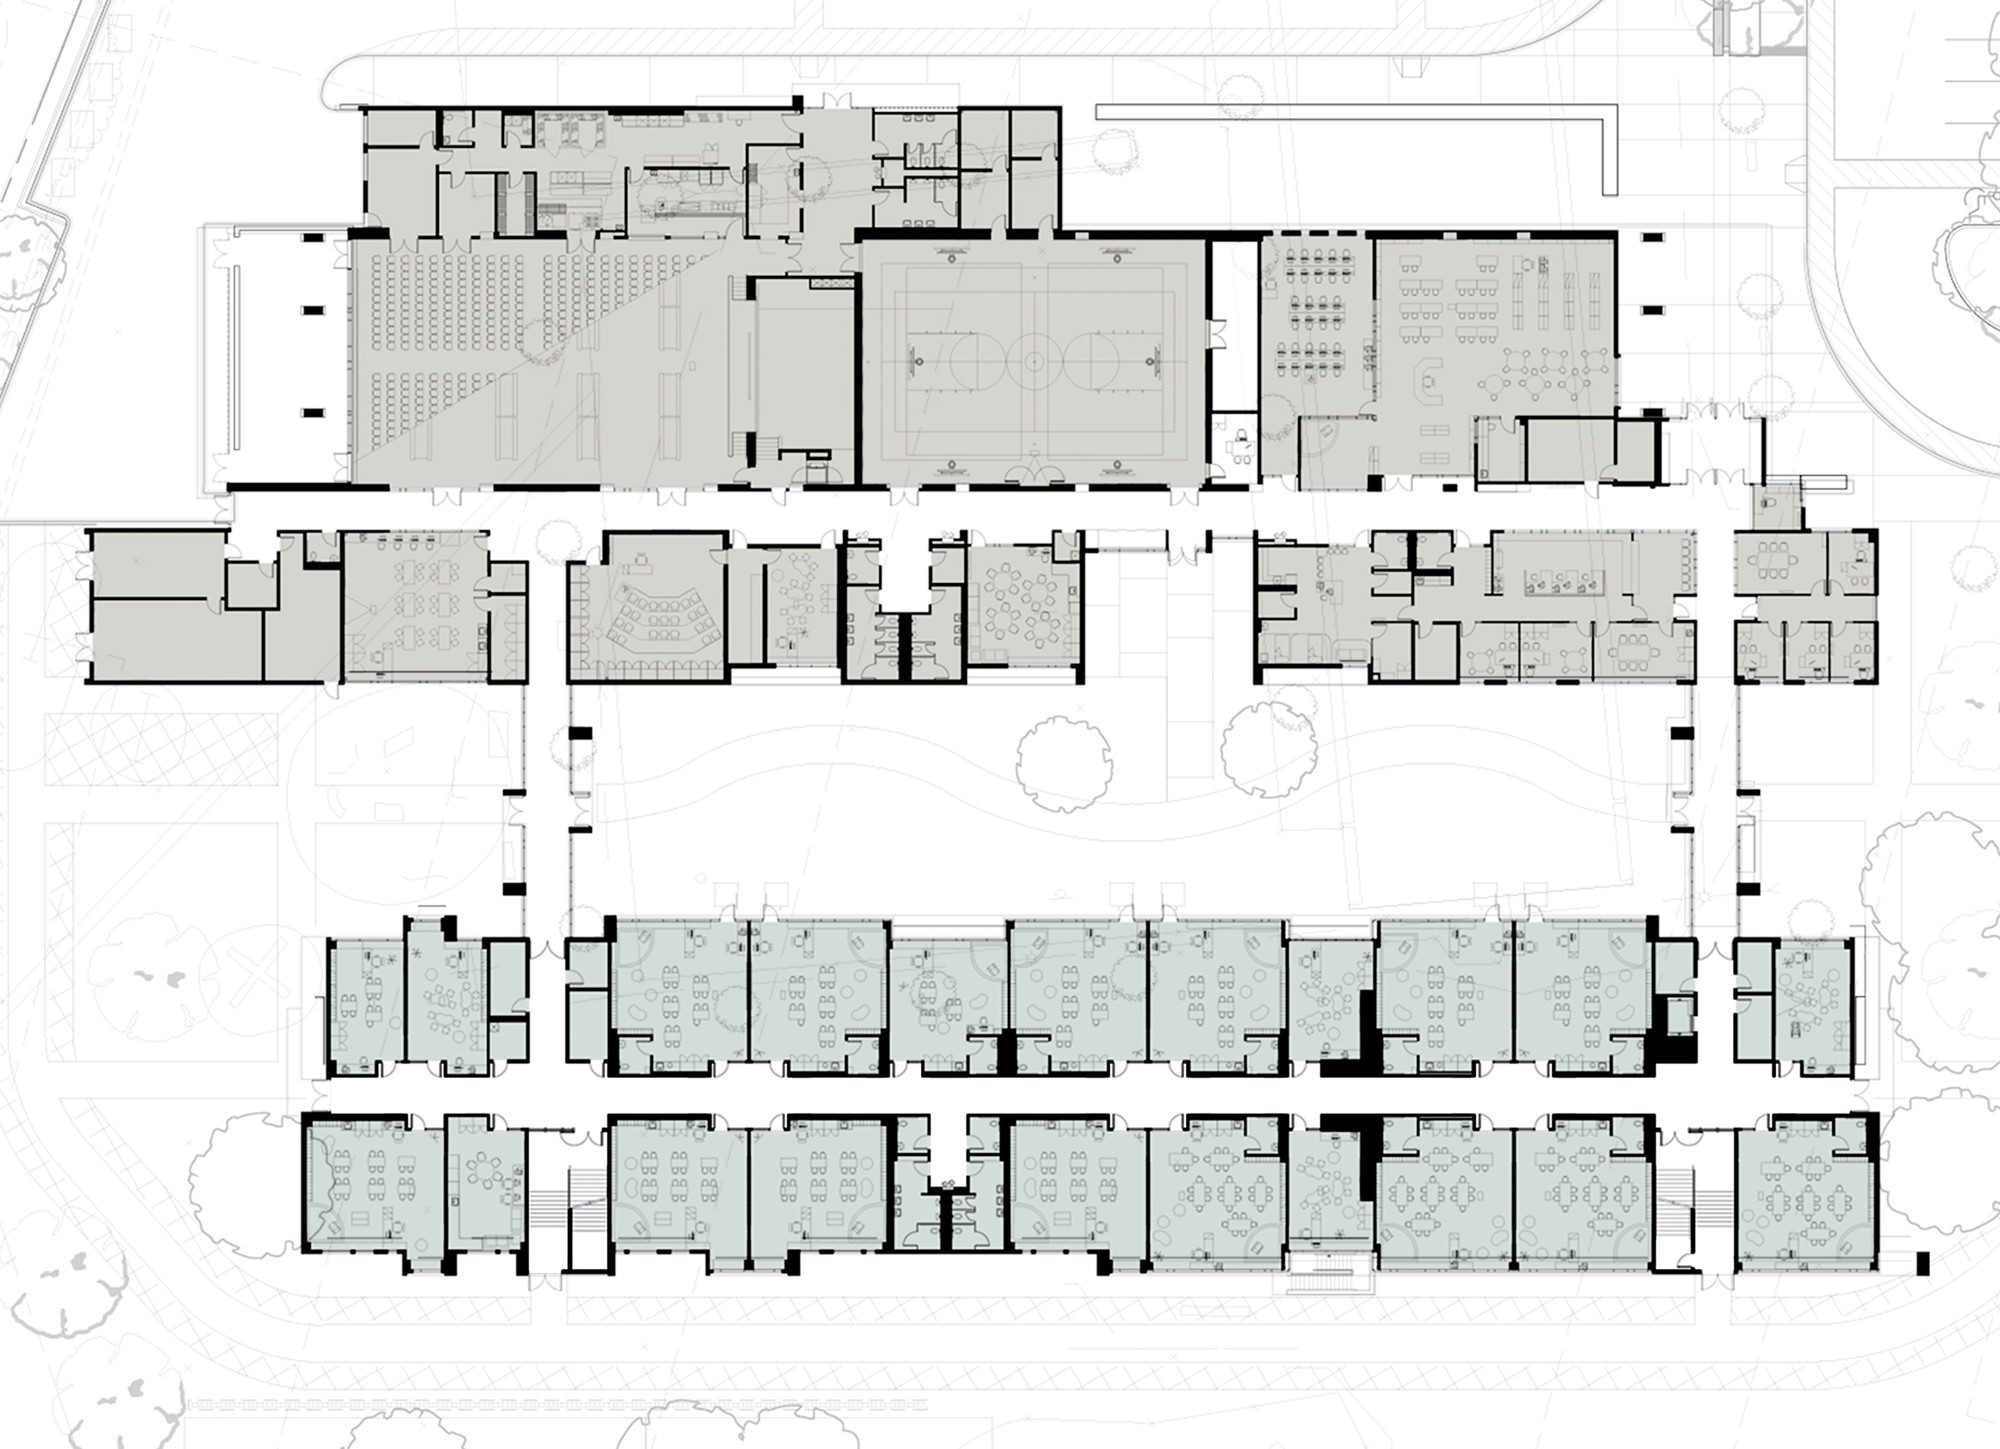 gallery of memorial elementary school / digrouparchitecture - 15